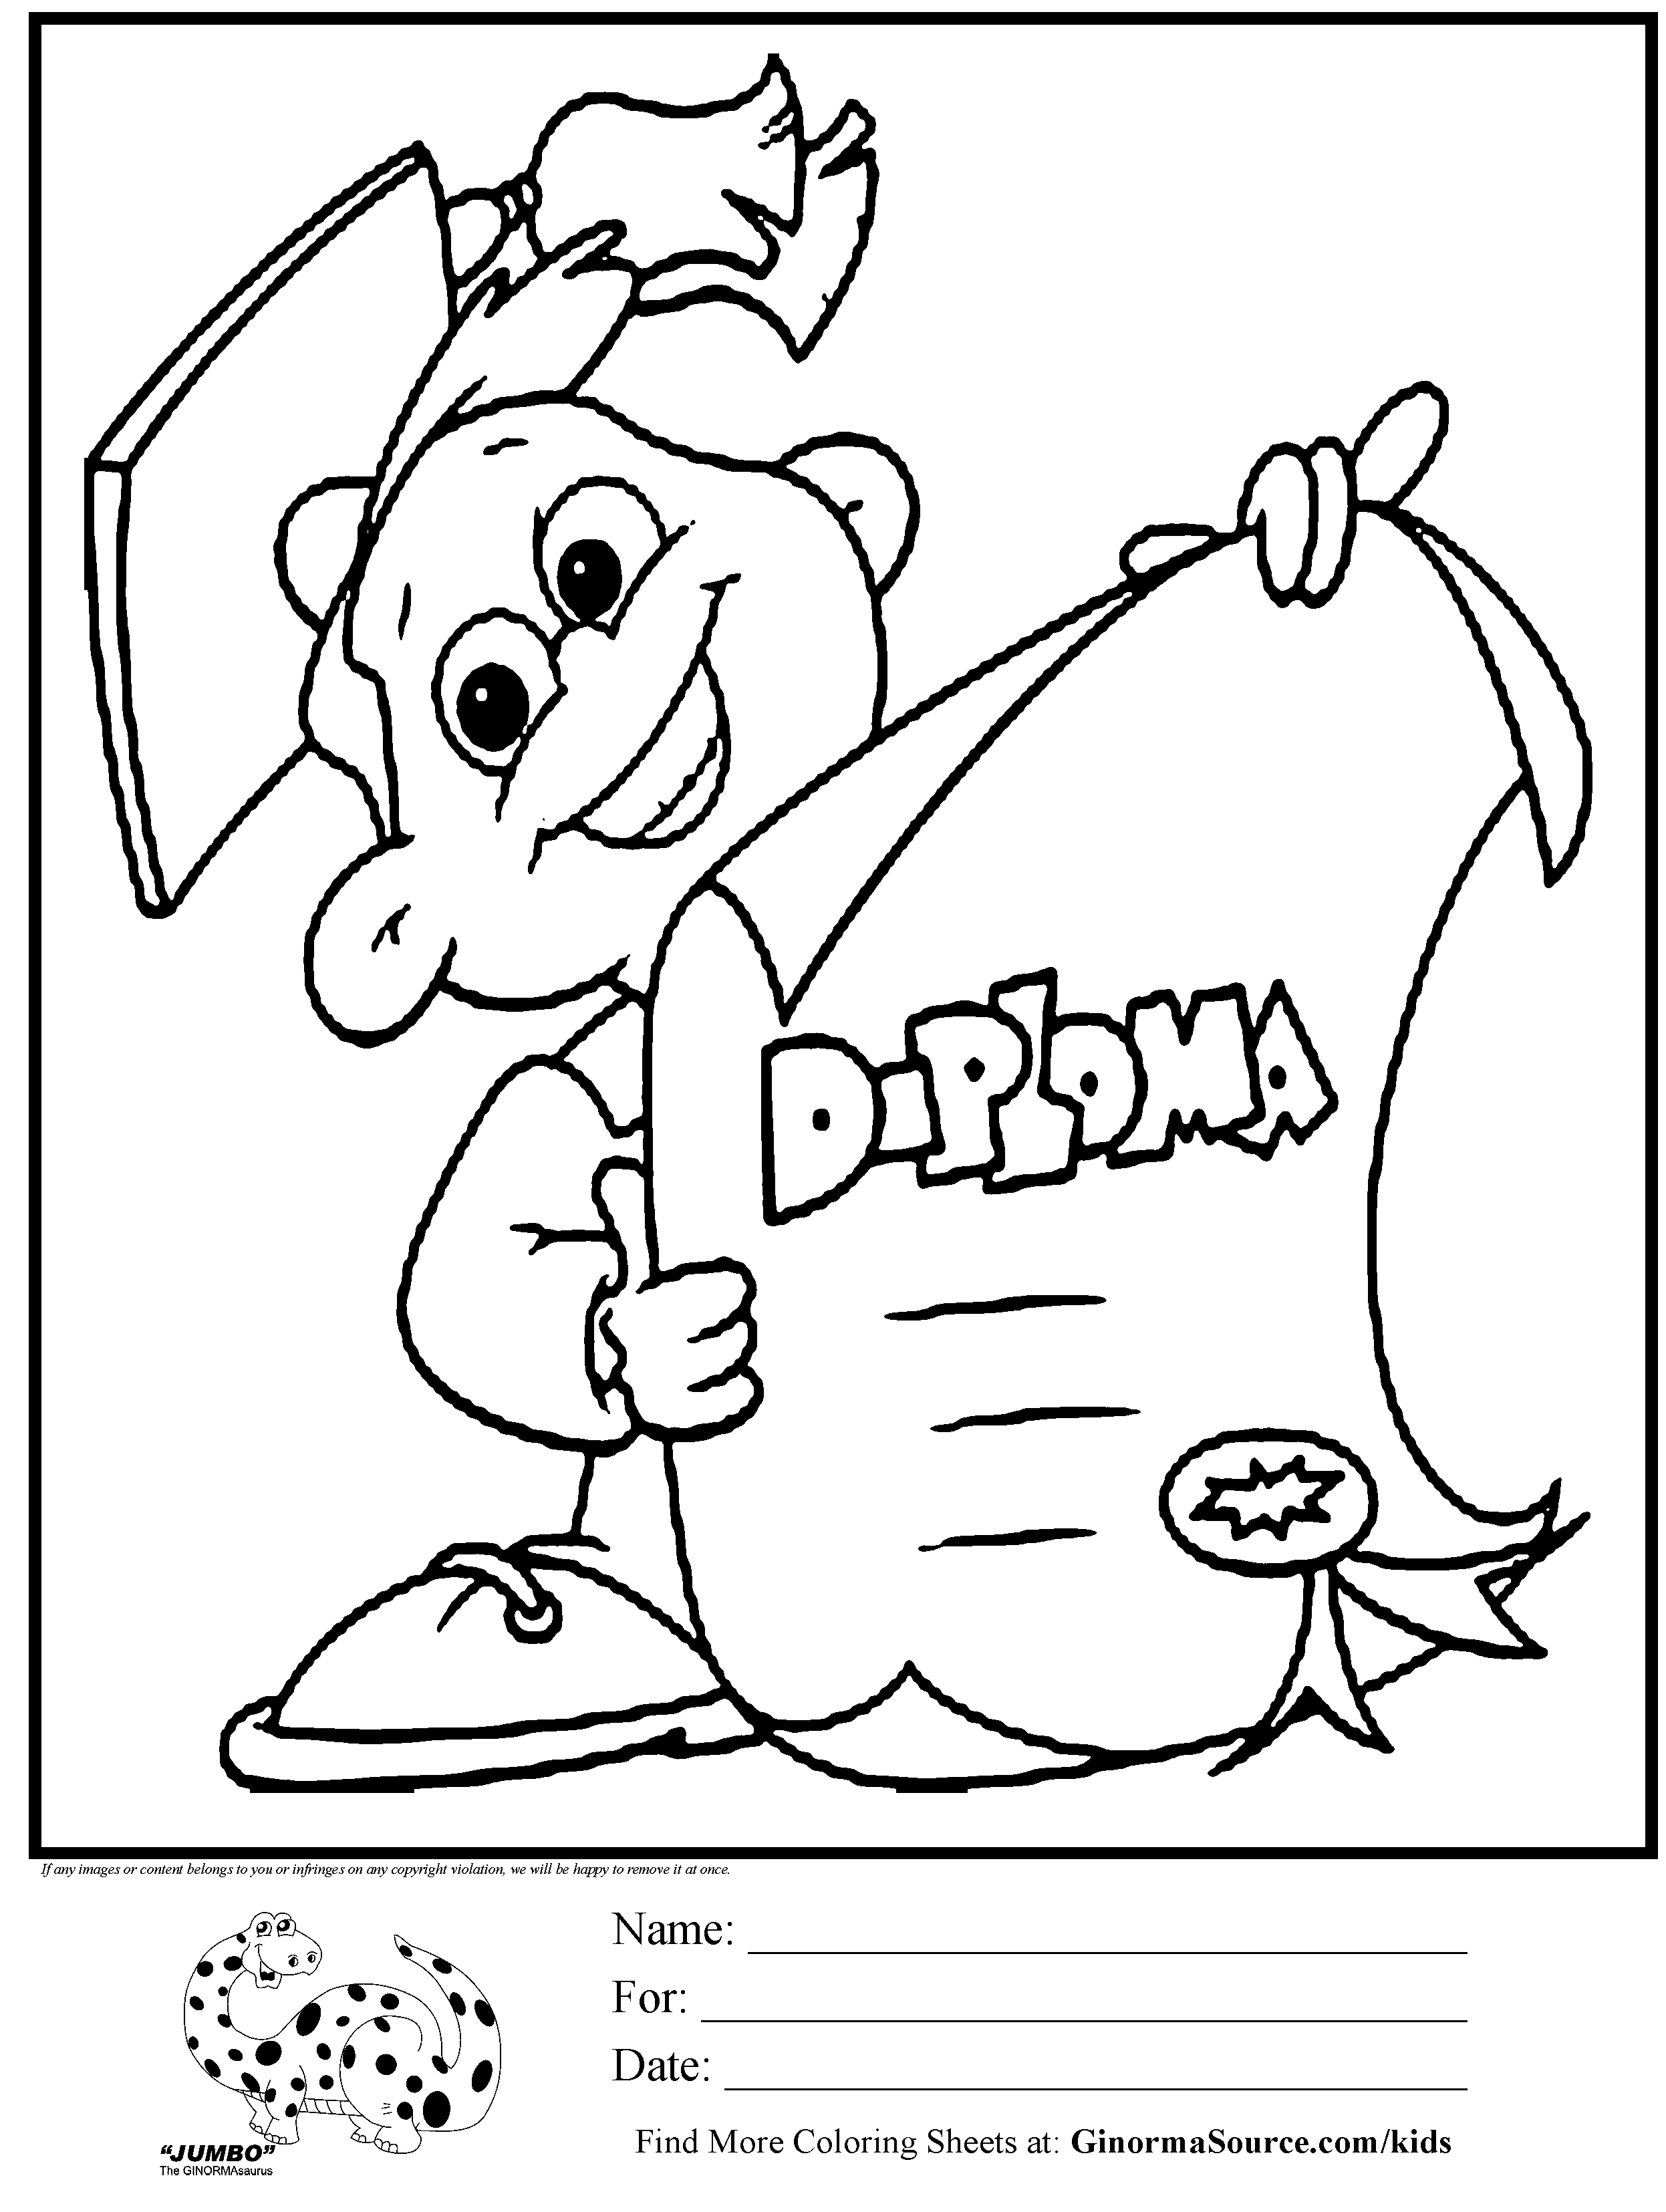 Kindergarten Graduation Coloring Pages Az Coloring Pages Coloring Sheets Kindergarten